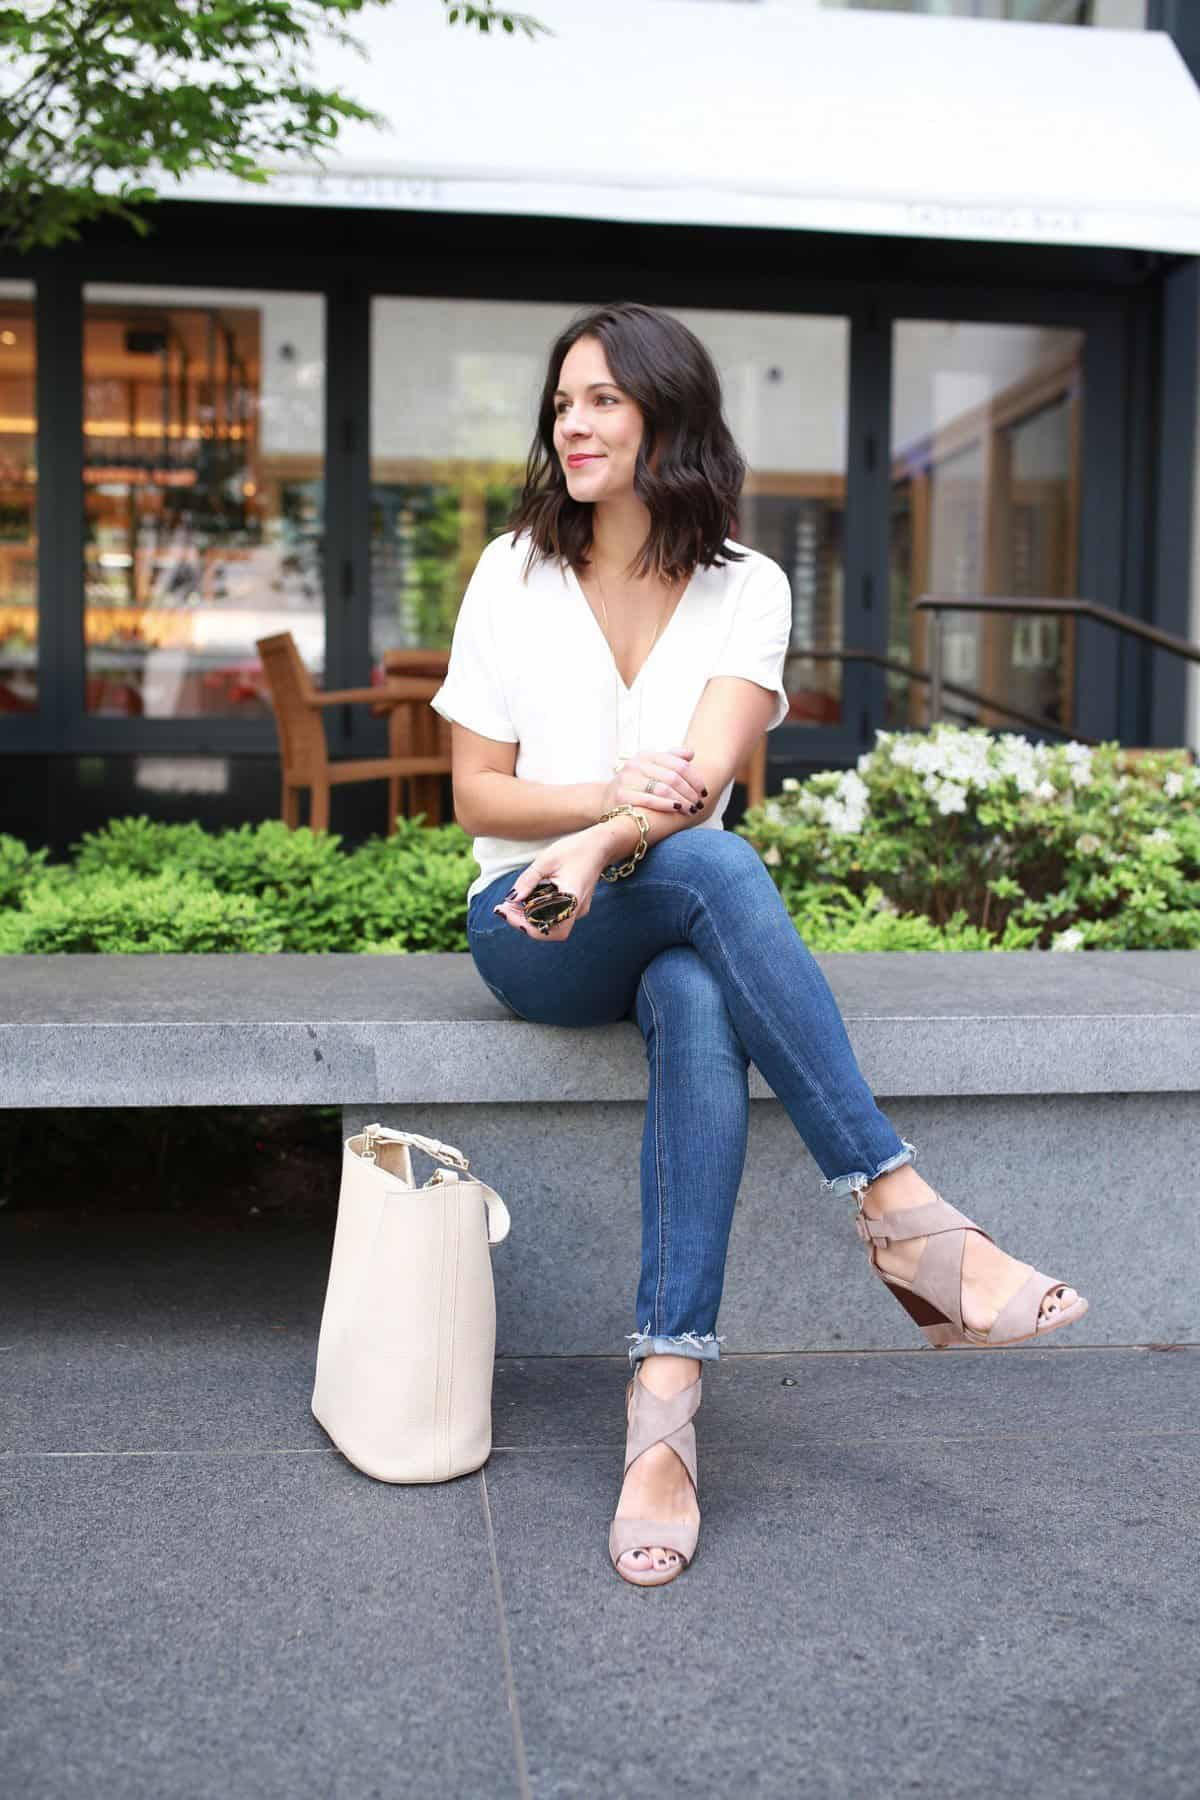 Cooper and Ella Blouse - Travel outfit ideas - My Style Vita @mystylevita (1 of 1)-4